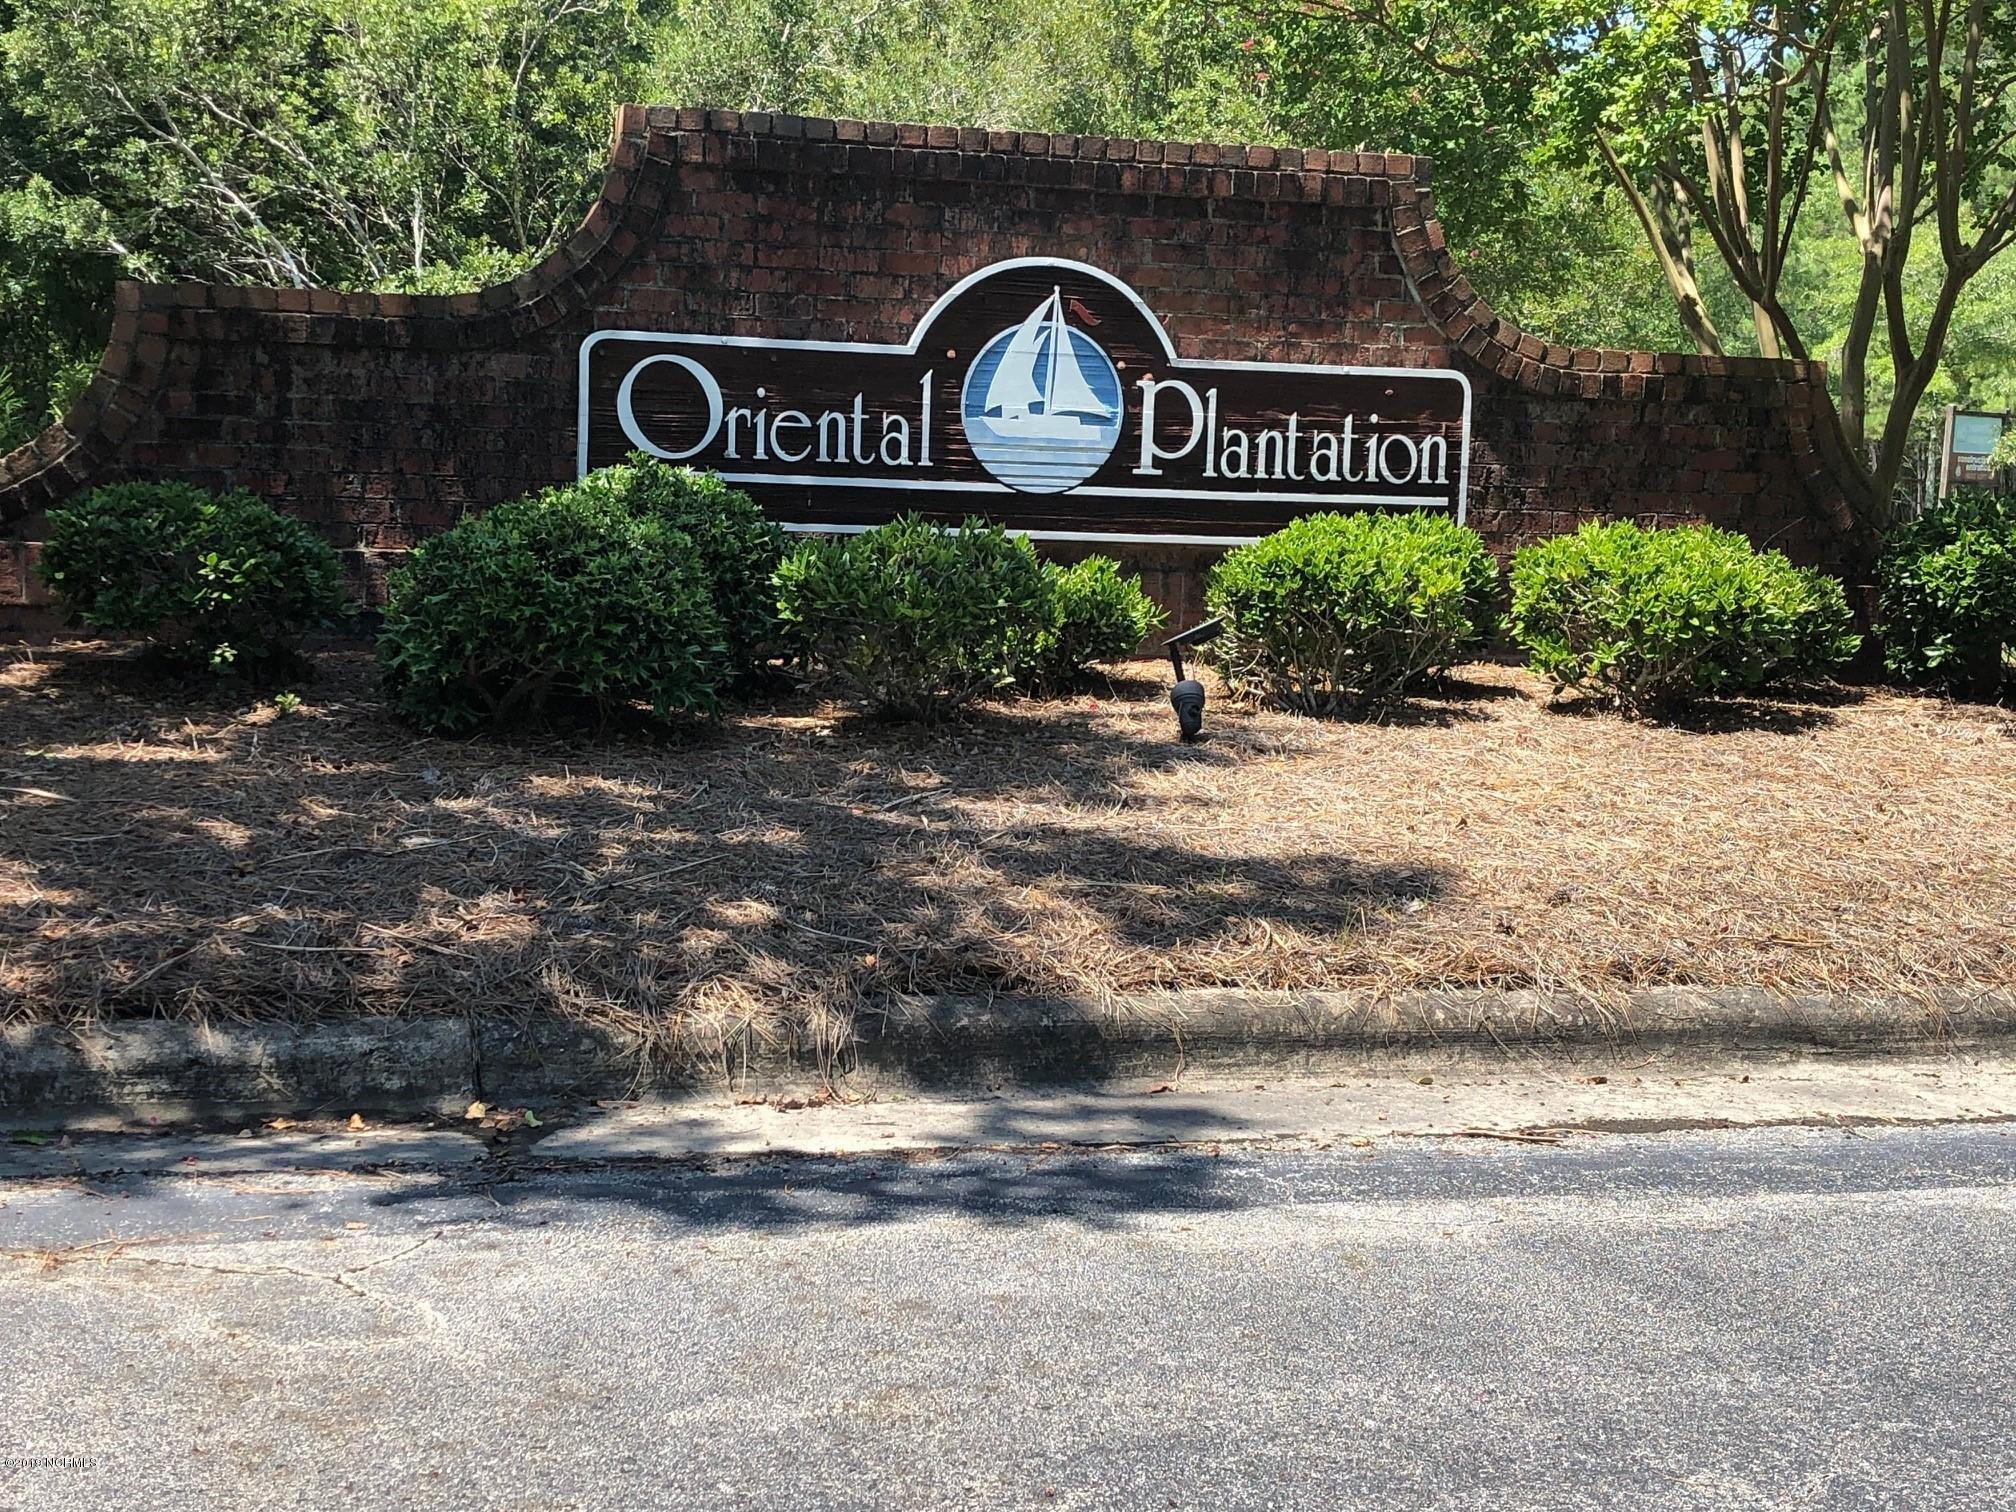 170 Winding Creek Drive, Oriental, North Carolina 28571, ,Residential land,For sale,Winding Creek,100179631